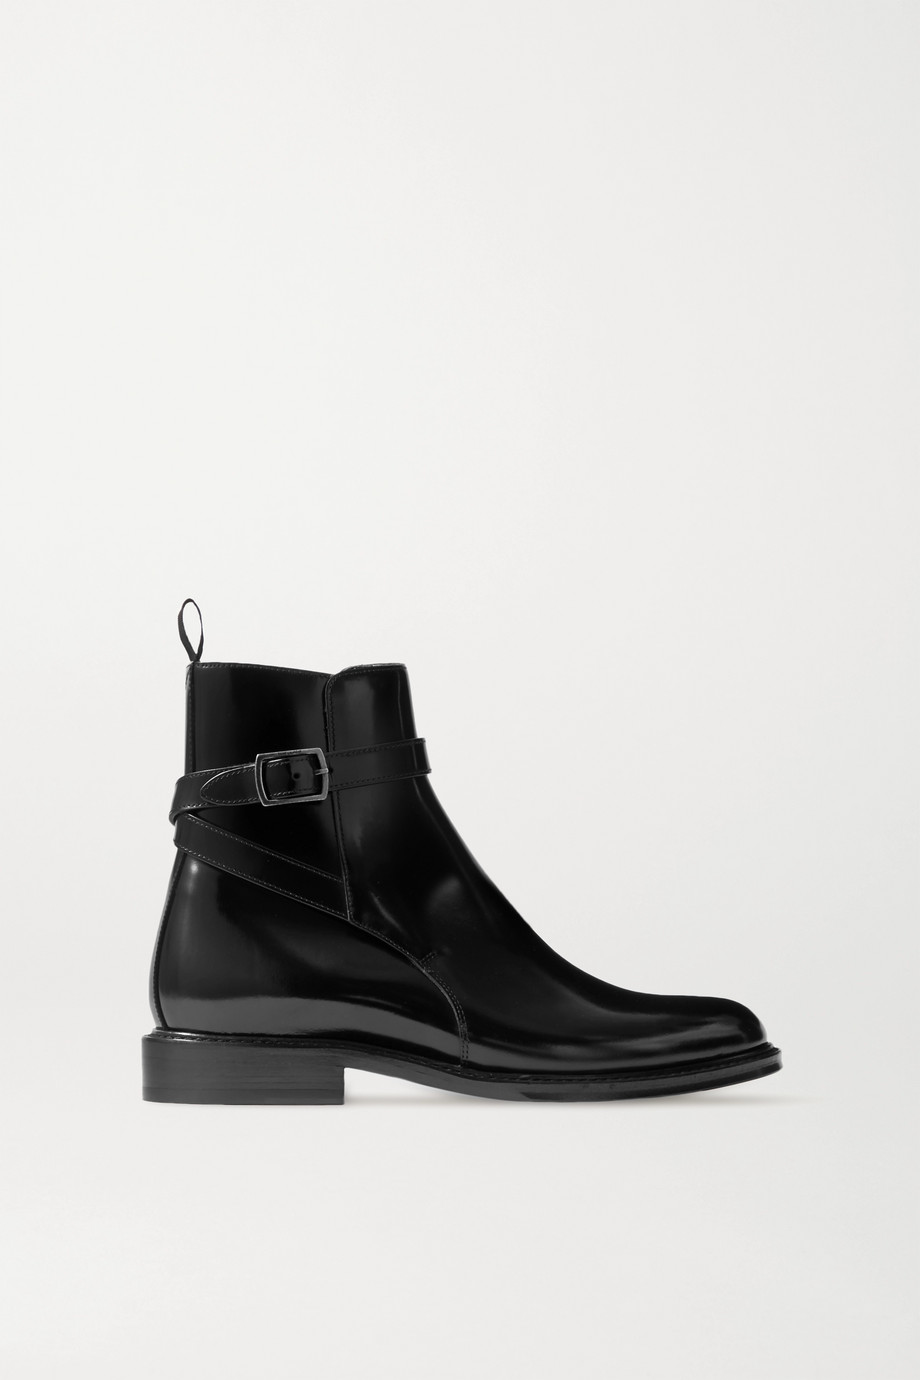 SAINT LAURENT Army glossed-leather ankle boots